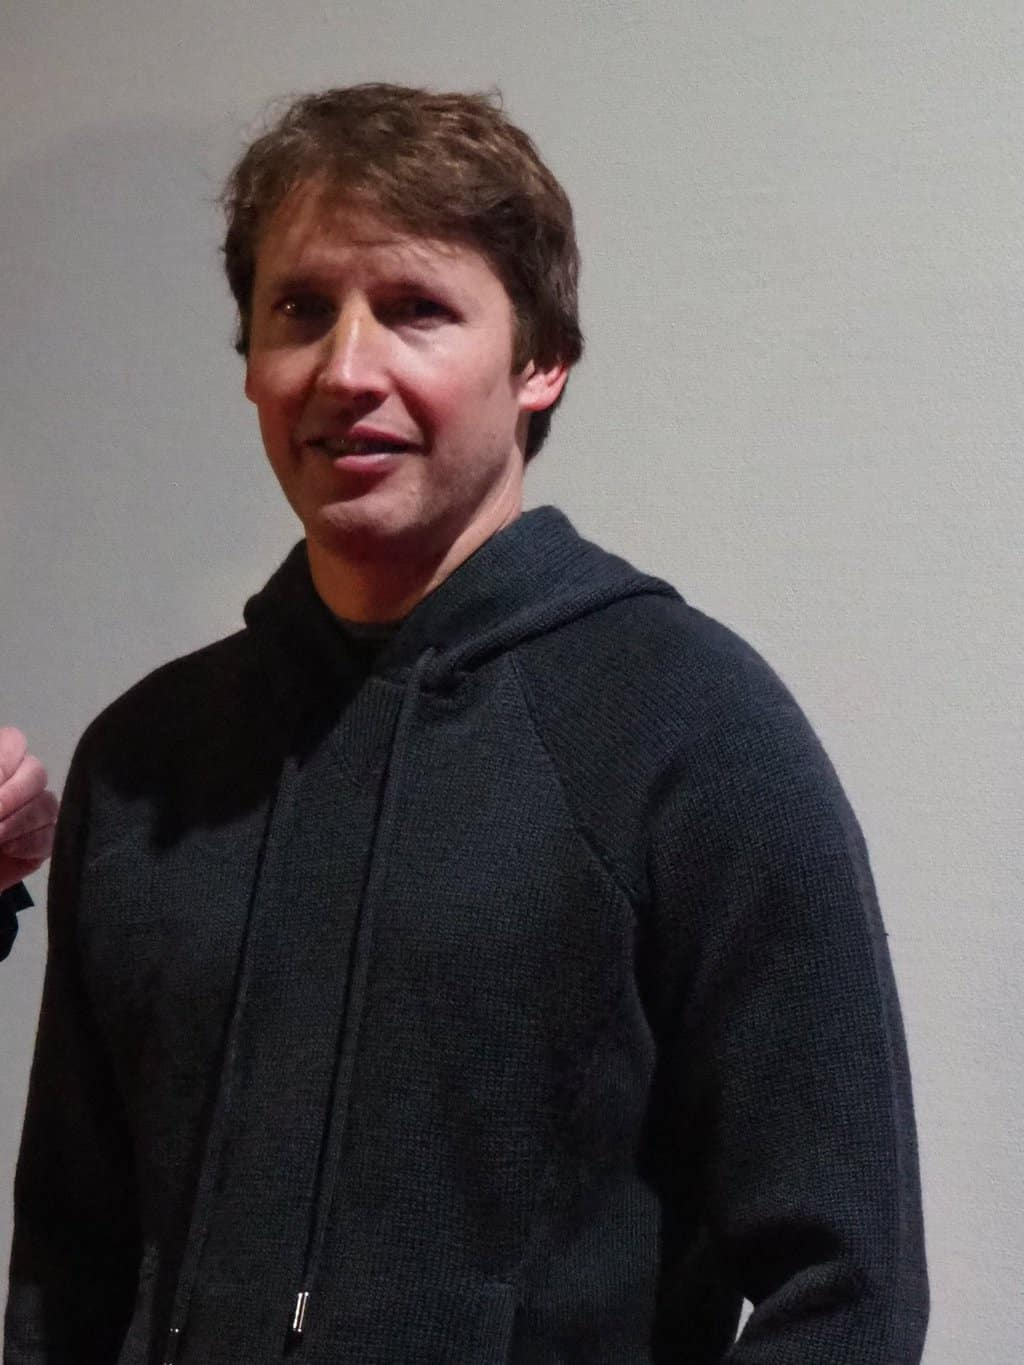 James Blunt On Tour In Switzerland With Art On Ice